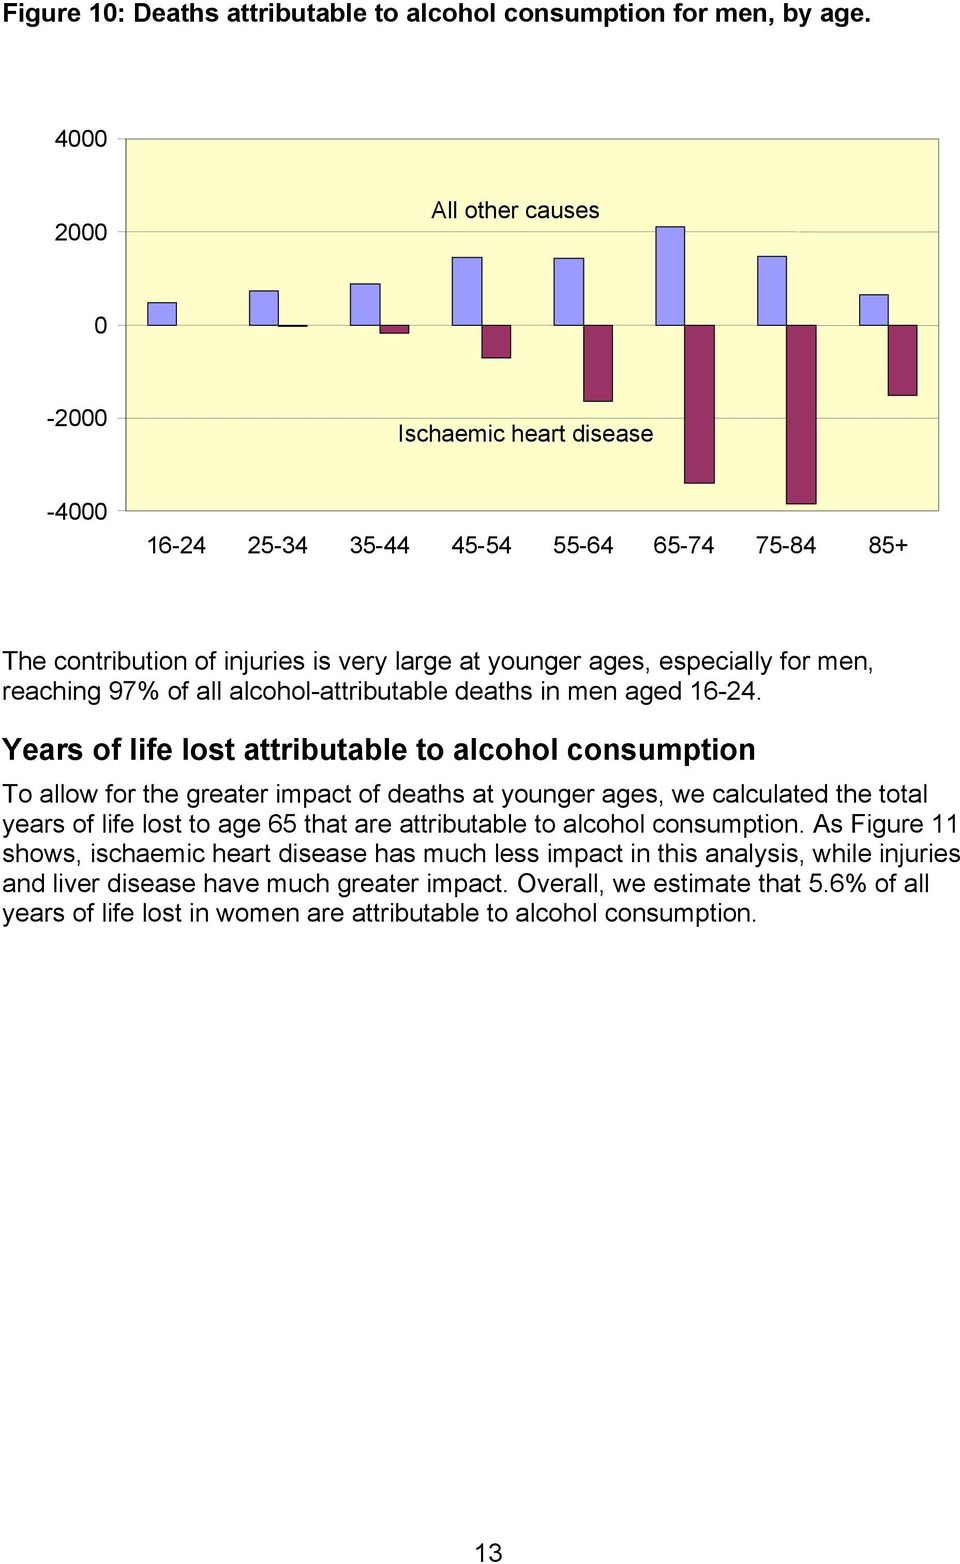 reaching 97% of all alcohol-attributable deaths in men aged 16-24.